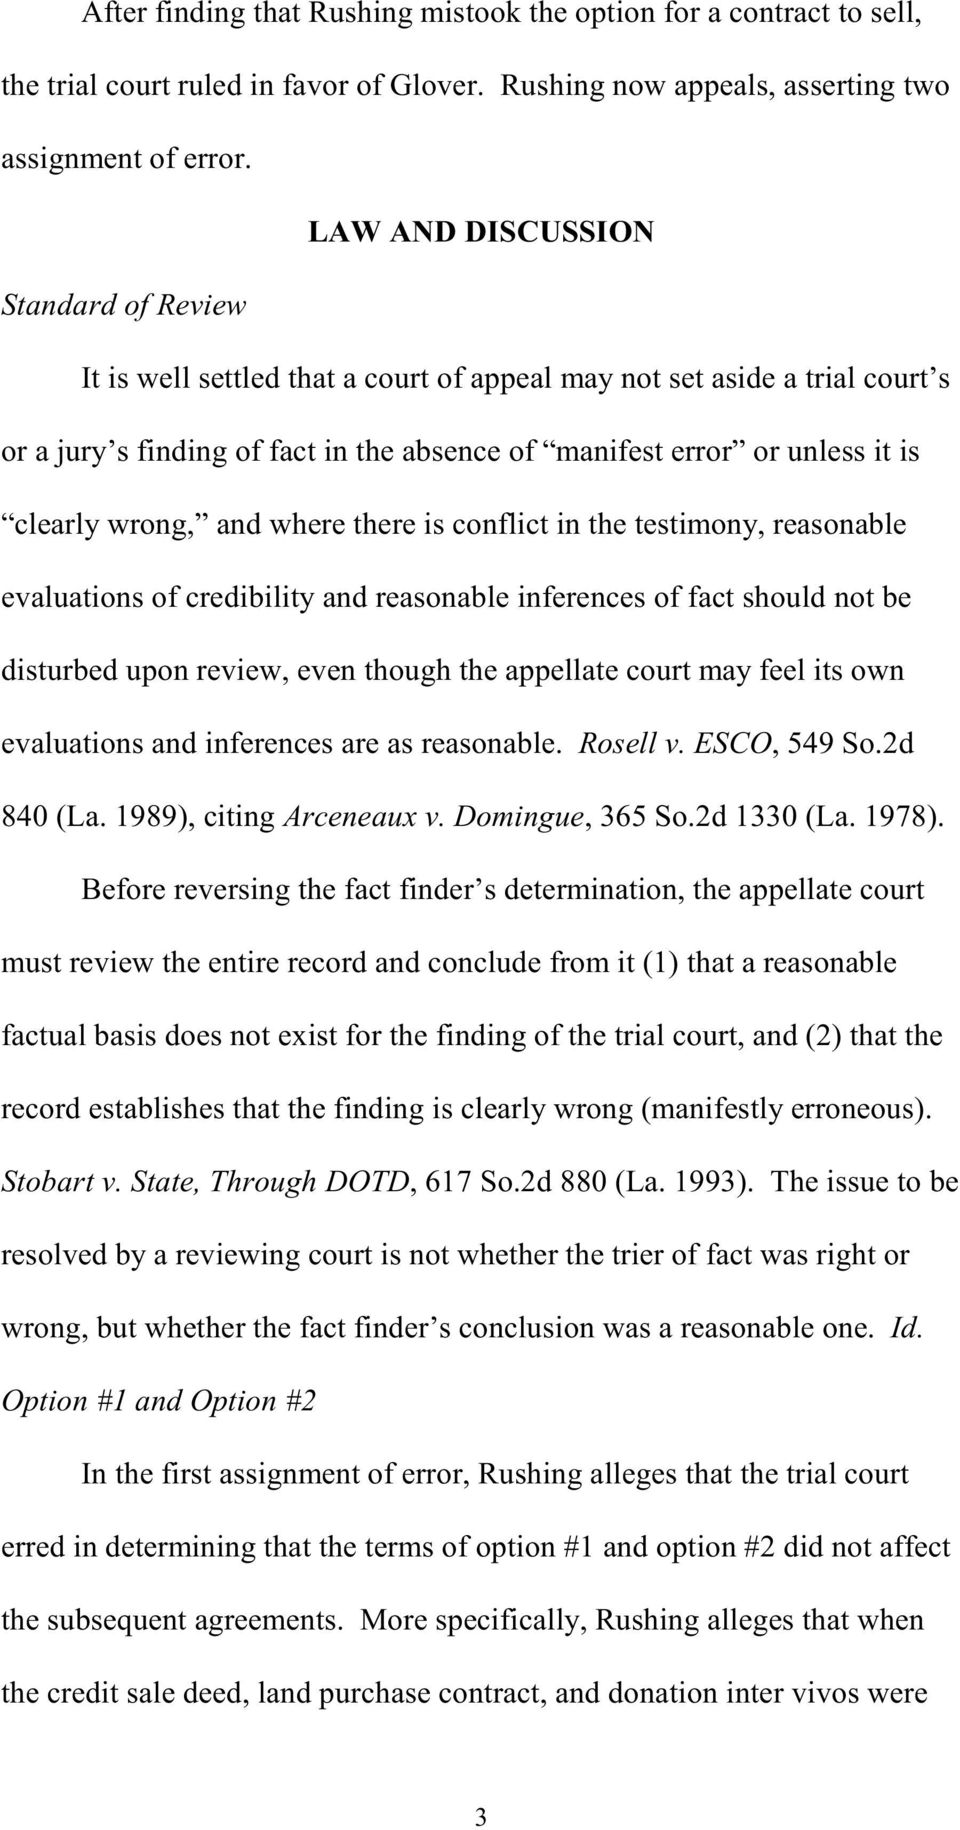 wrong, and where there is conflict in the testimony, reasonable evaluations of credibility and reasonable inferences of fact should not be disturbed upon review, even though the appellate court may